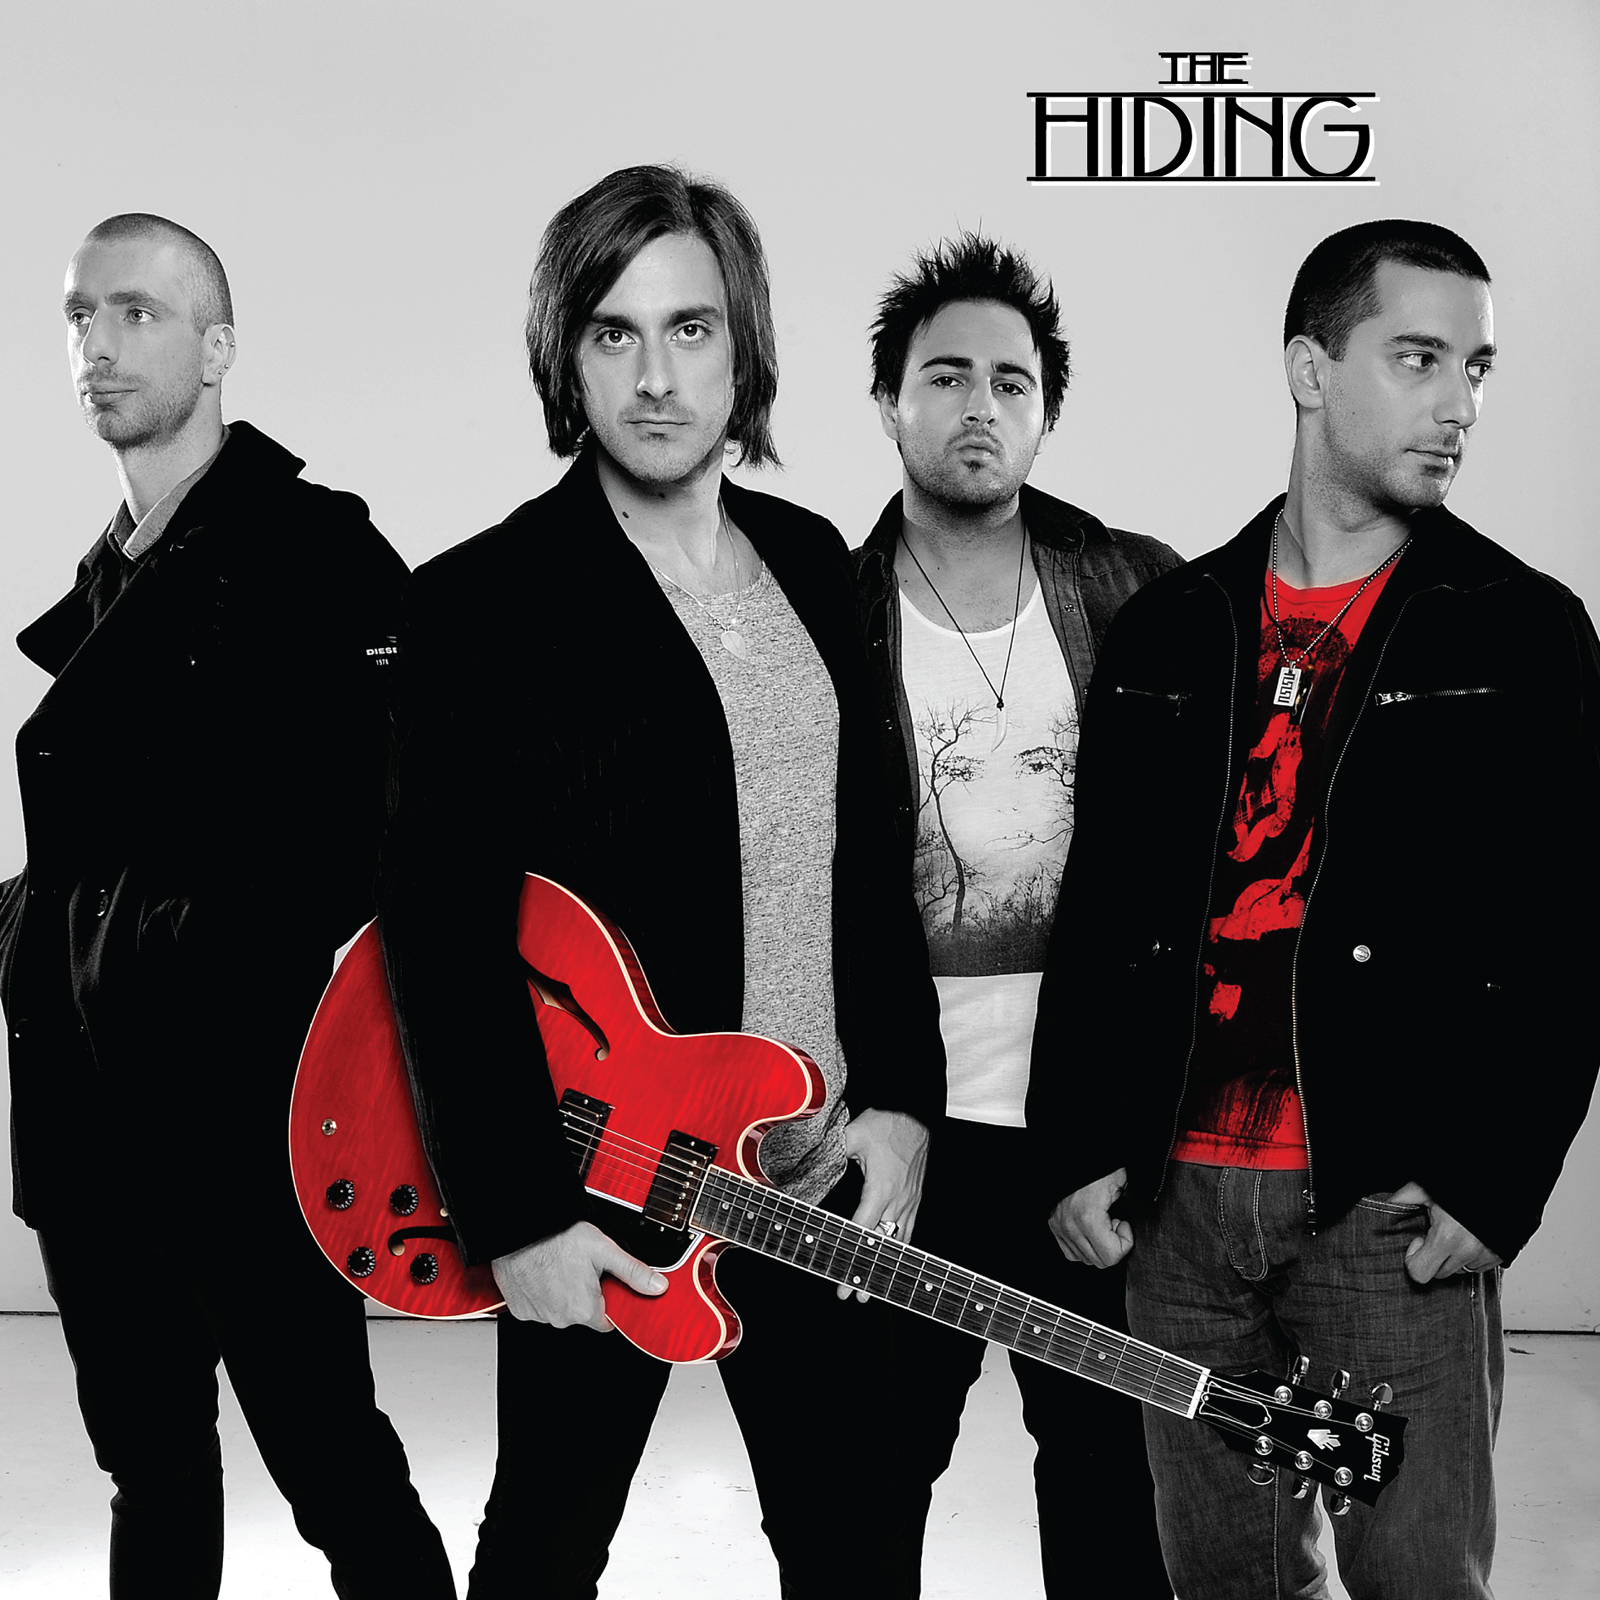 Melbourne band The Hiding to hit USA in October!